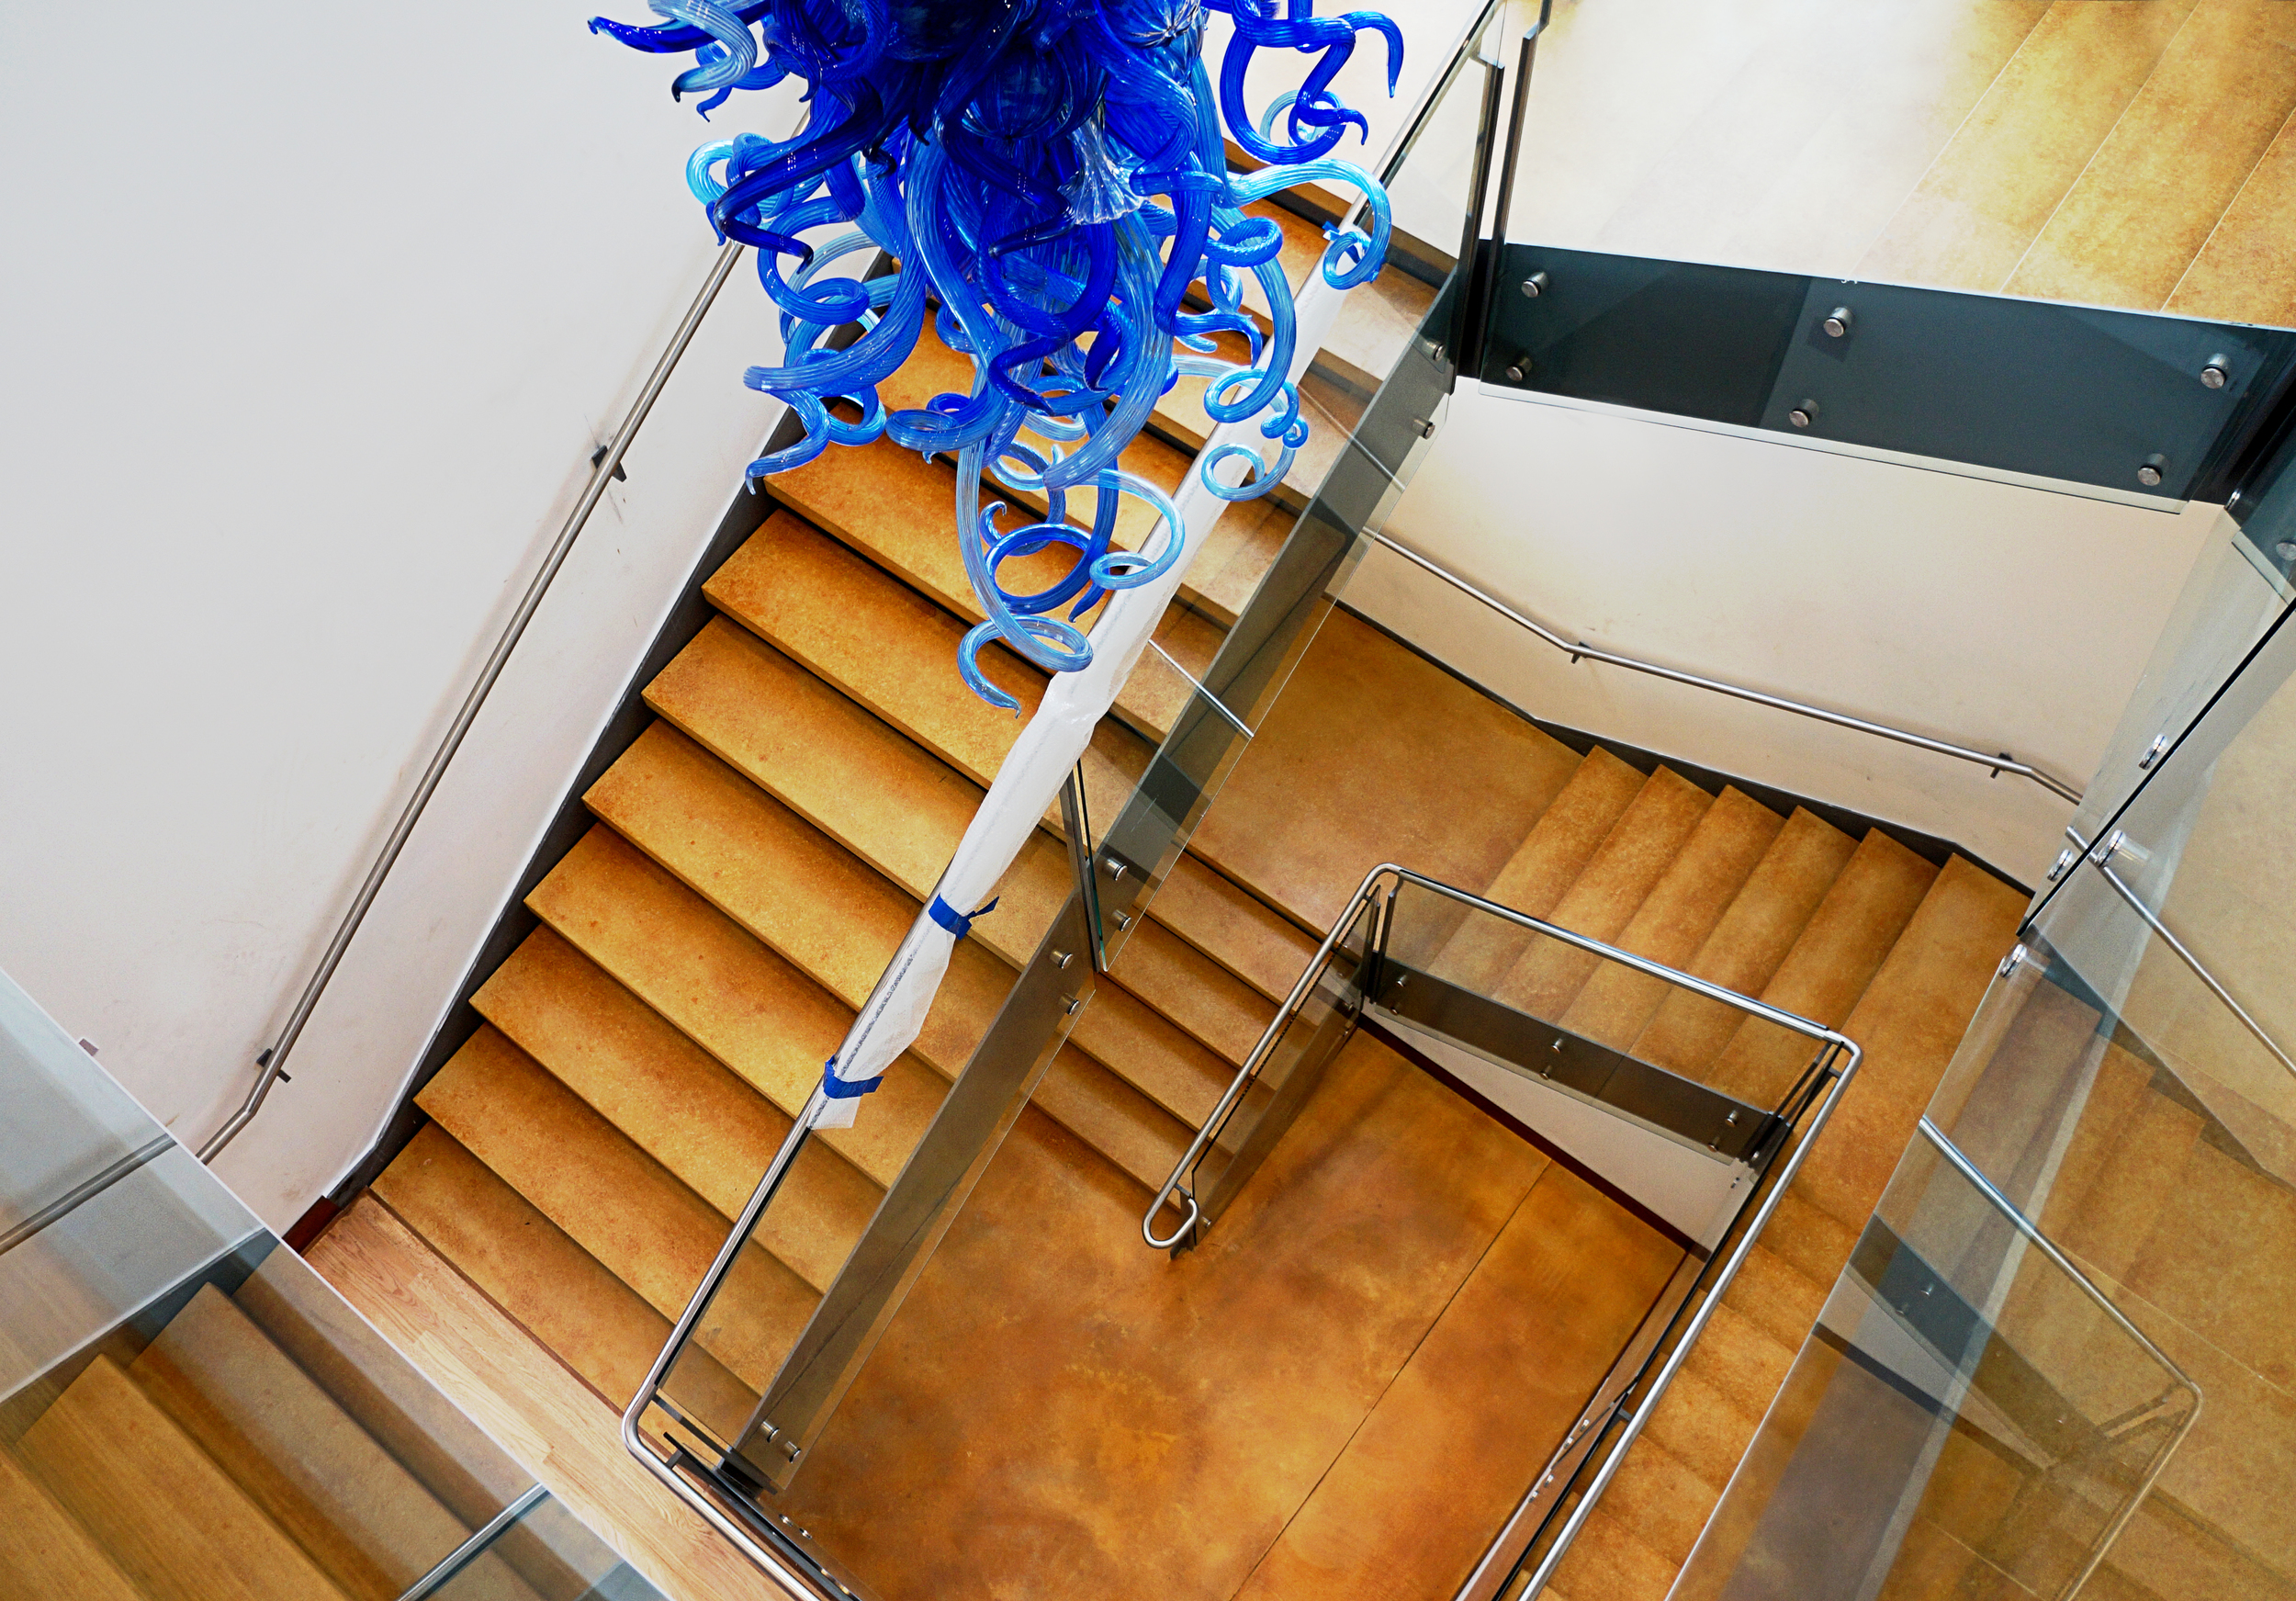 NBMAA_stairs_BlueSculpture.jpg